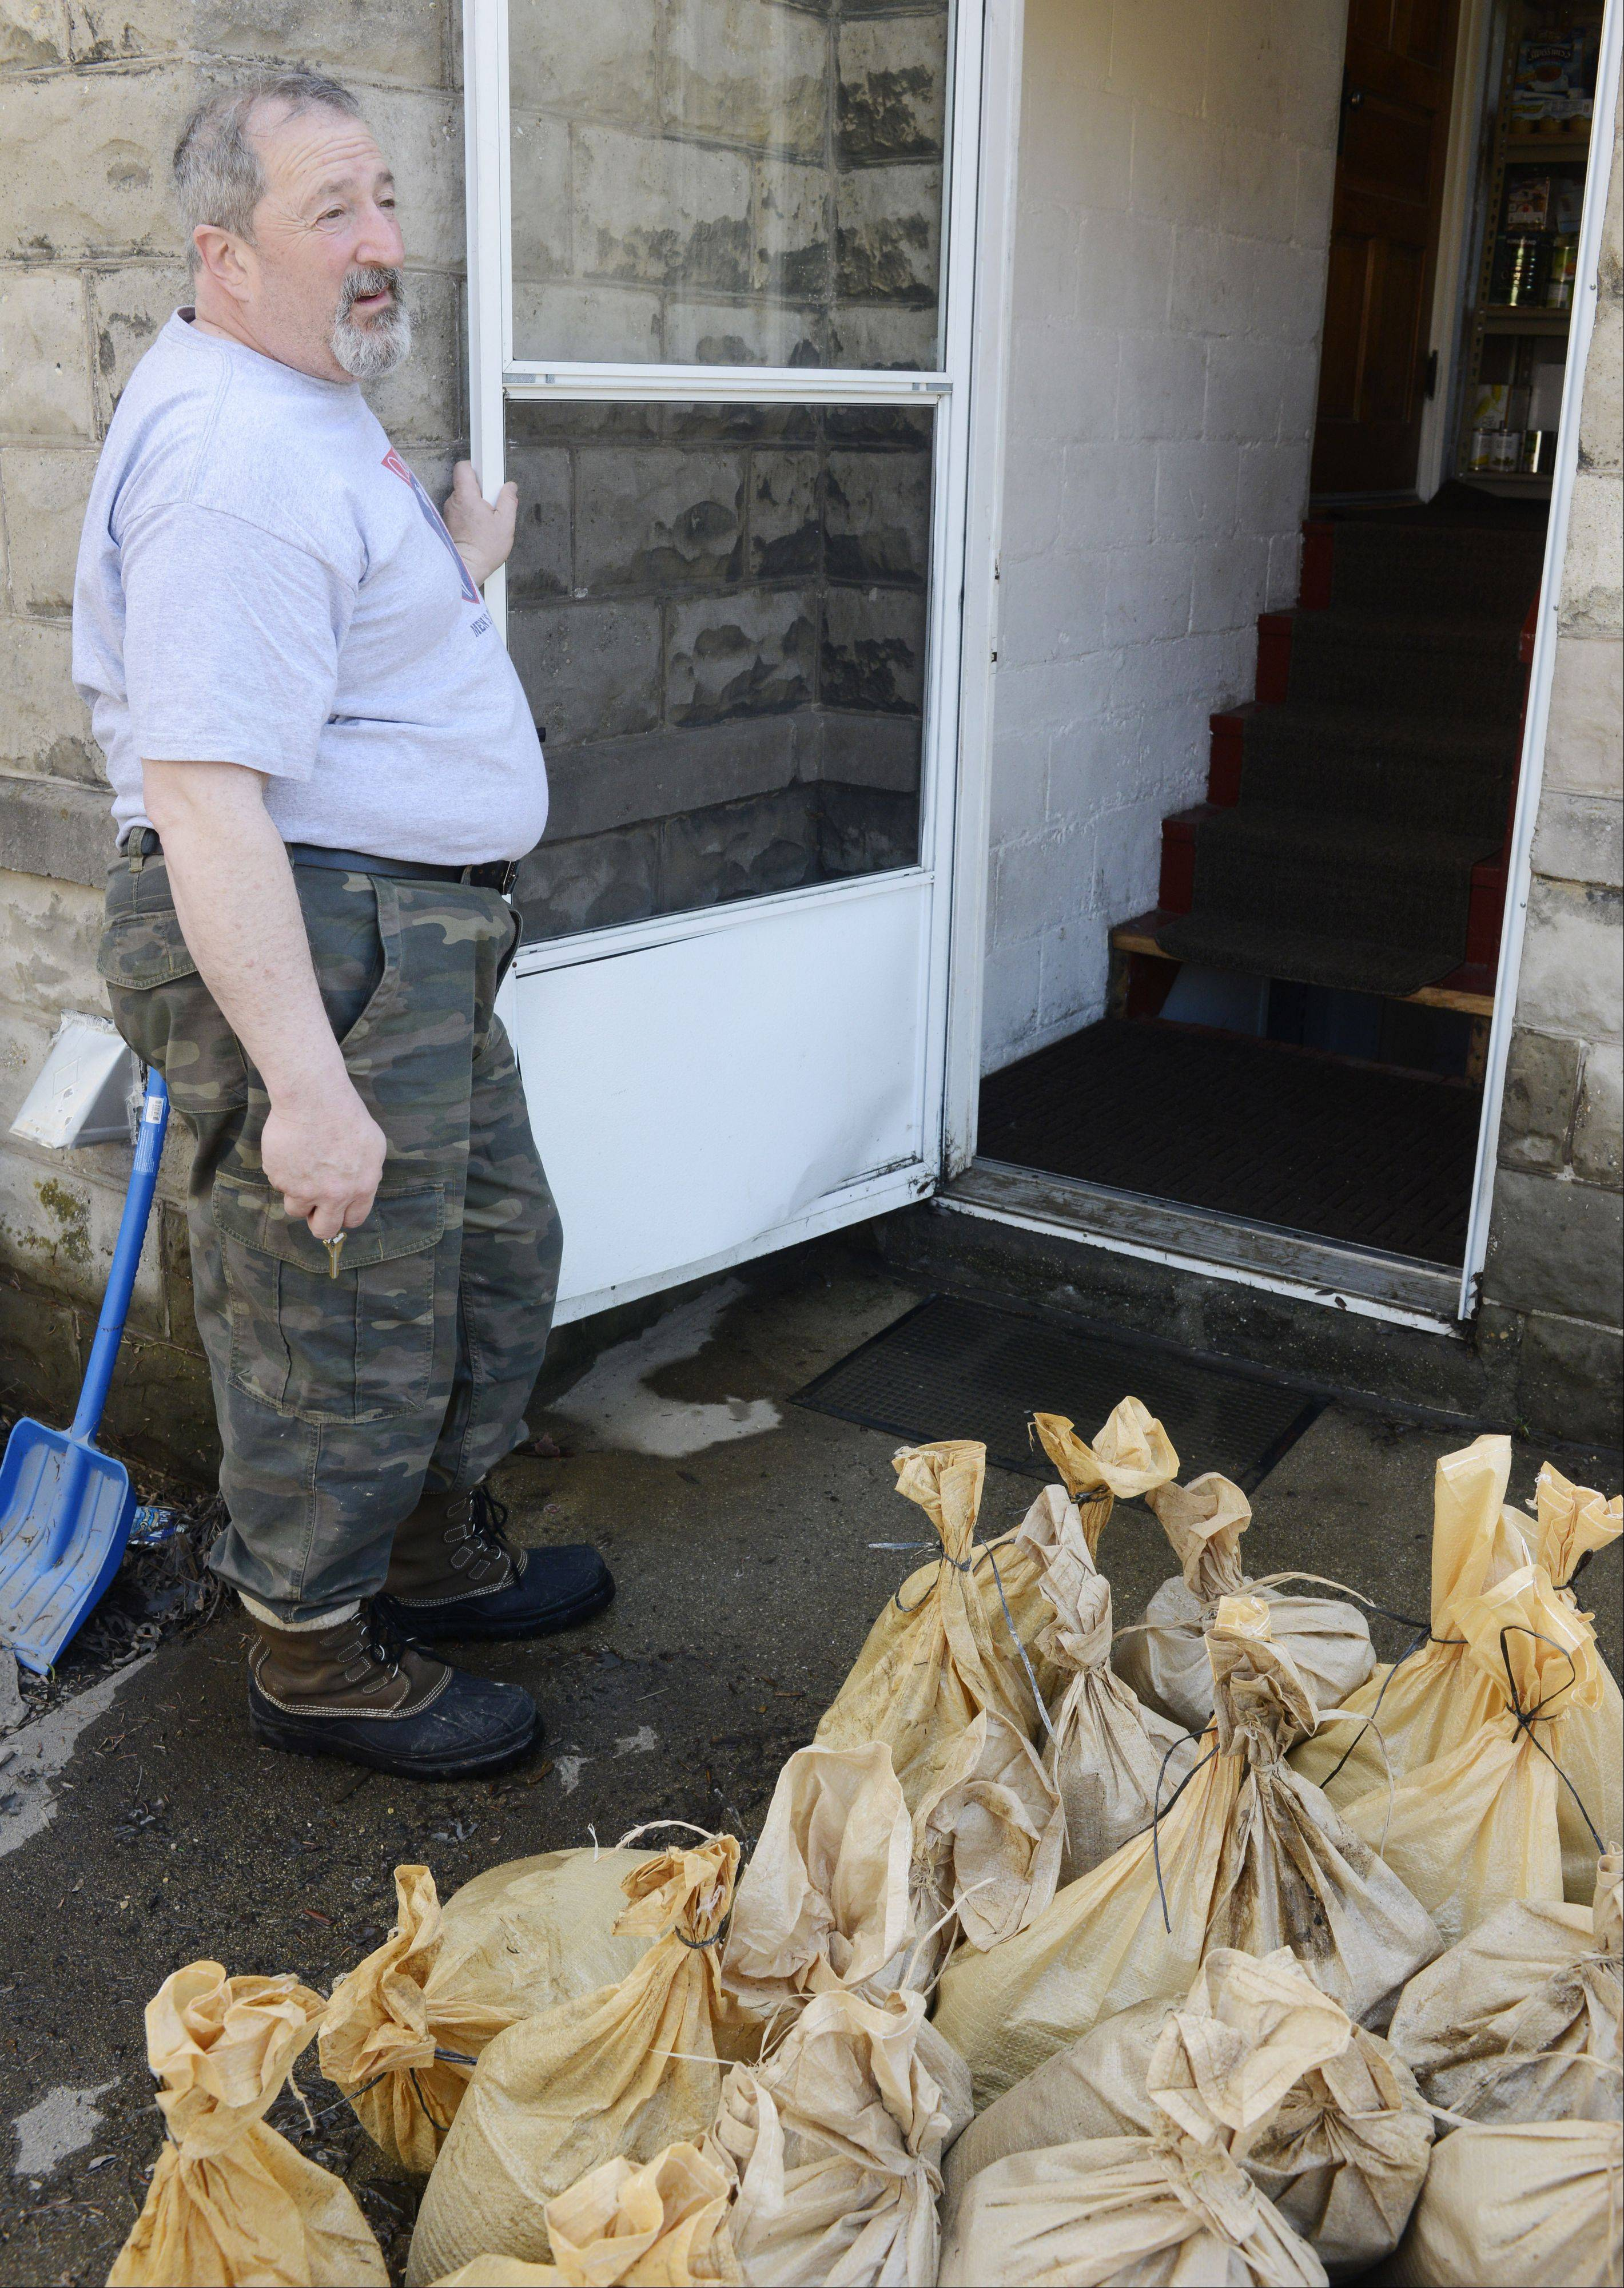 The sandbags have been moved out of the way, but Steven Brody said Monday that his back stairs will have to be replaced due to flood damage at his Walnut Avenue home in Des Plaines.